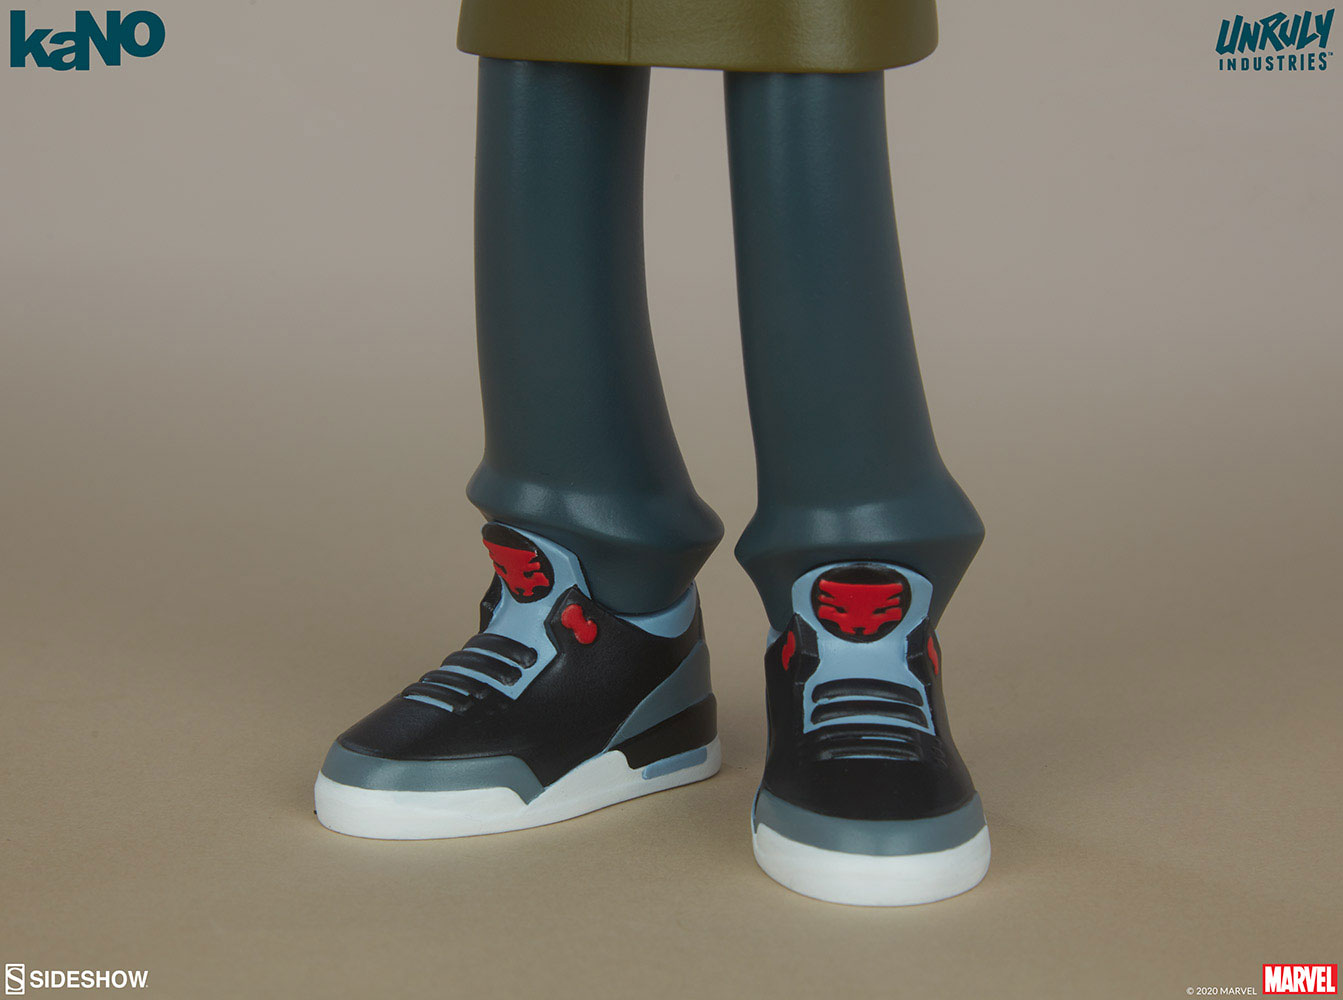 unruly-industries-kano-marvel-black-panther-toy-figure-in-sneakers-4